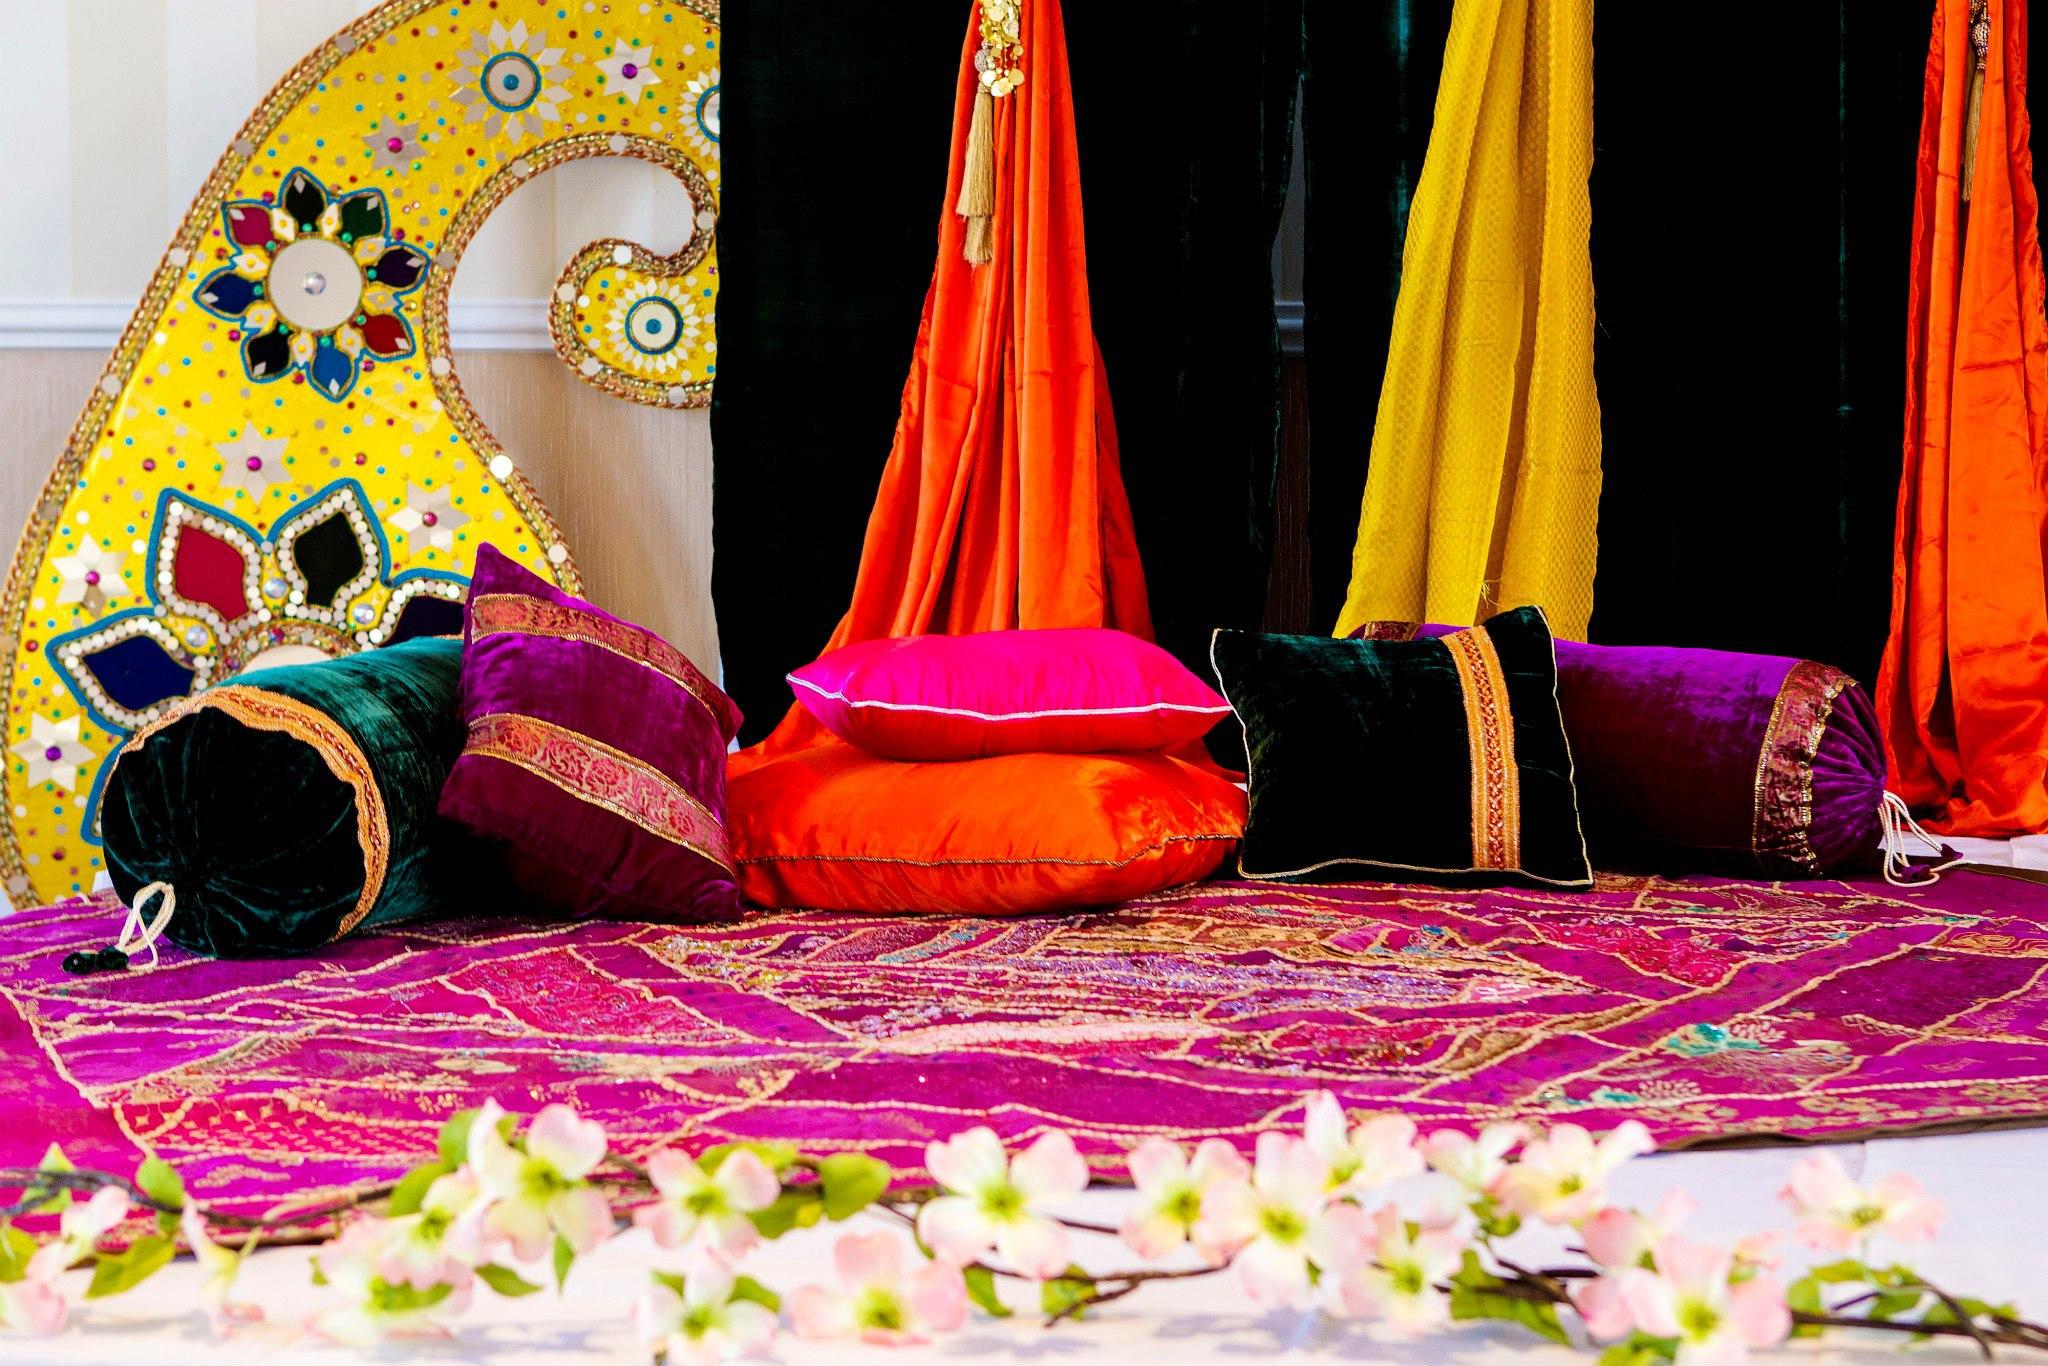 Imperial Decorations - Indian Wedding Sangeet Mehndi Stage Designs Decorations.jpg